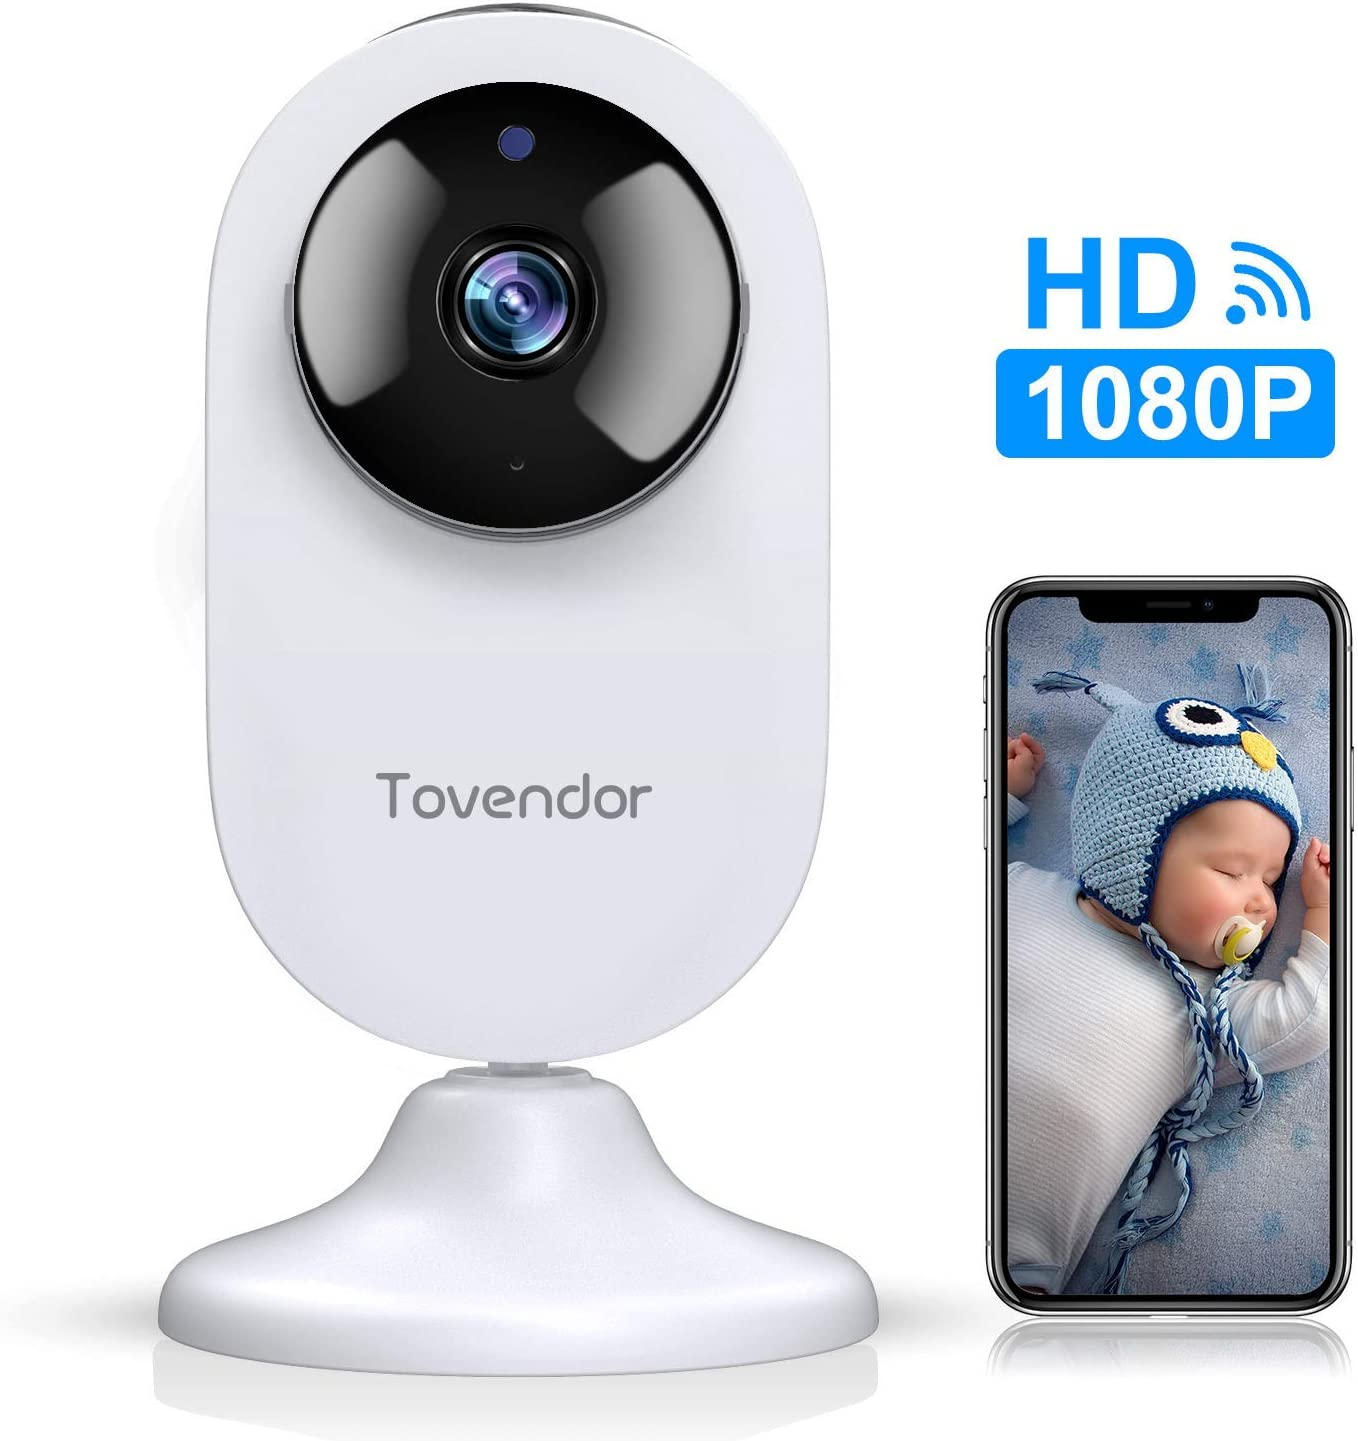 Mini Smart Home Camera, Tovendor 1080P WiFi IP Security Camera with Cloud Storage/Night Vision/Motion Detection, Wide Angle Nanny Baby/Pet Monitor with Two Way Audio